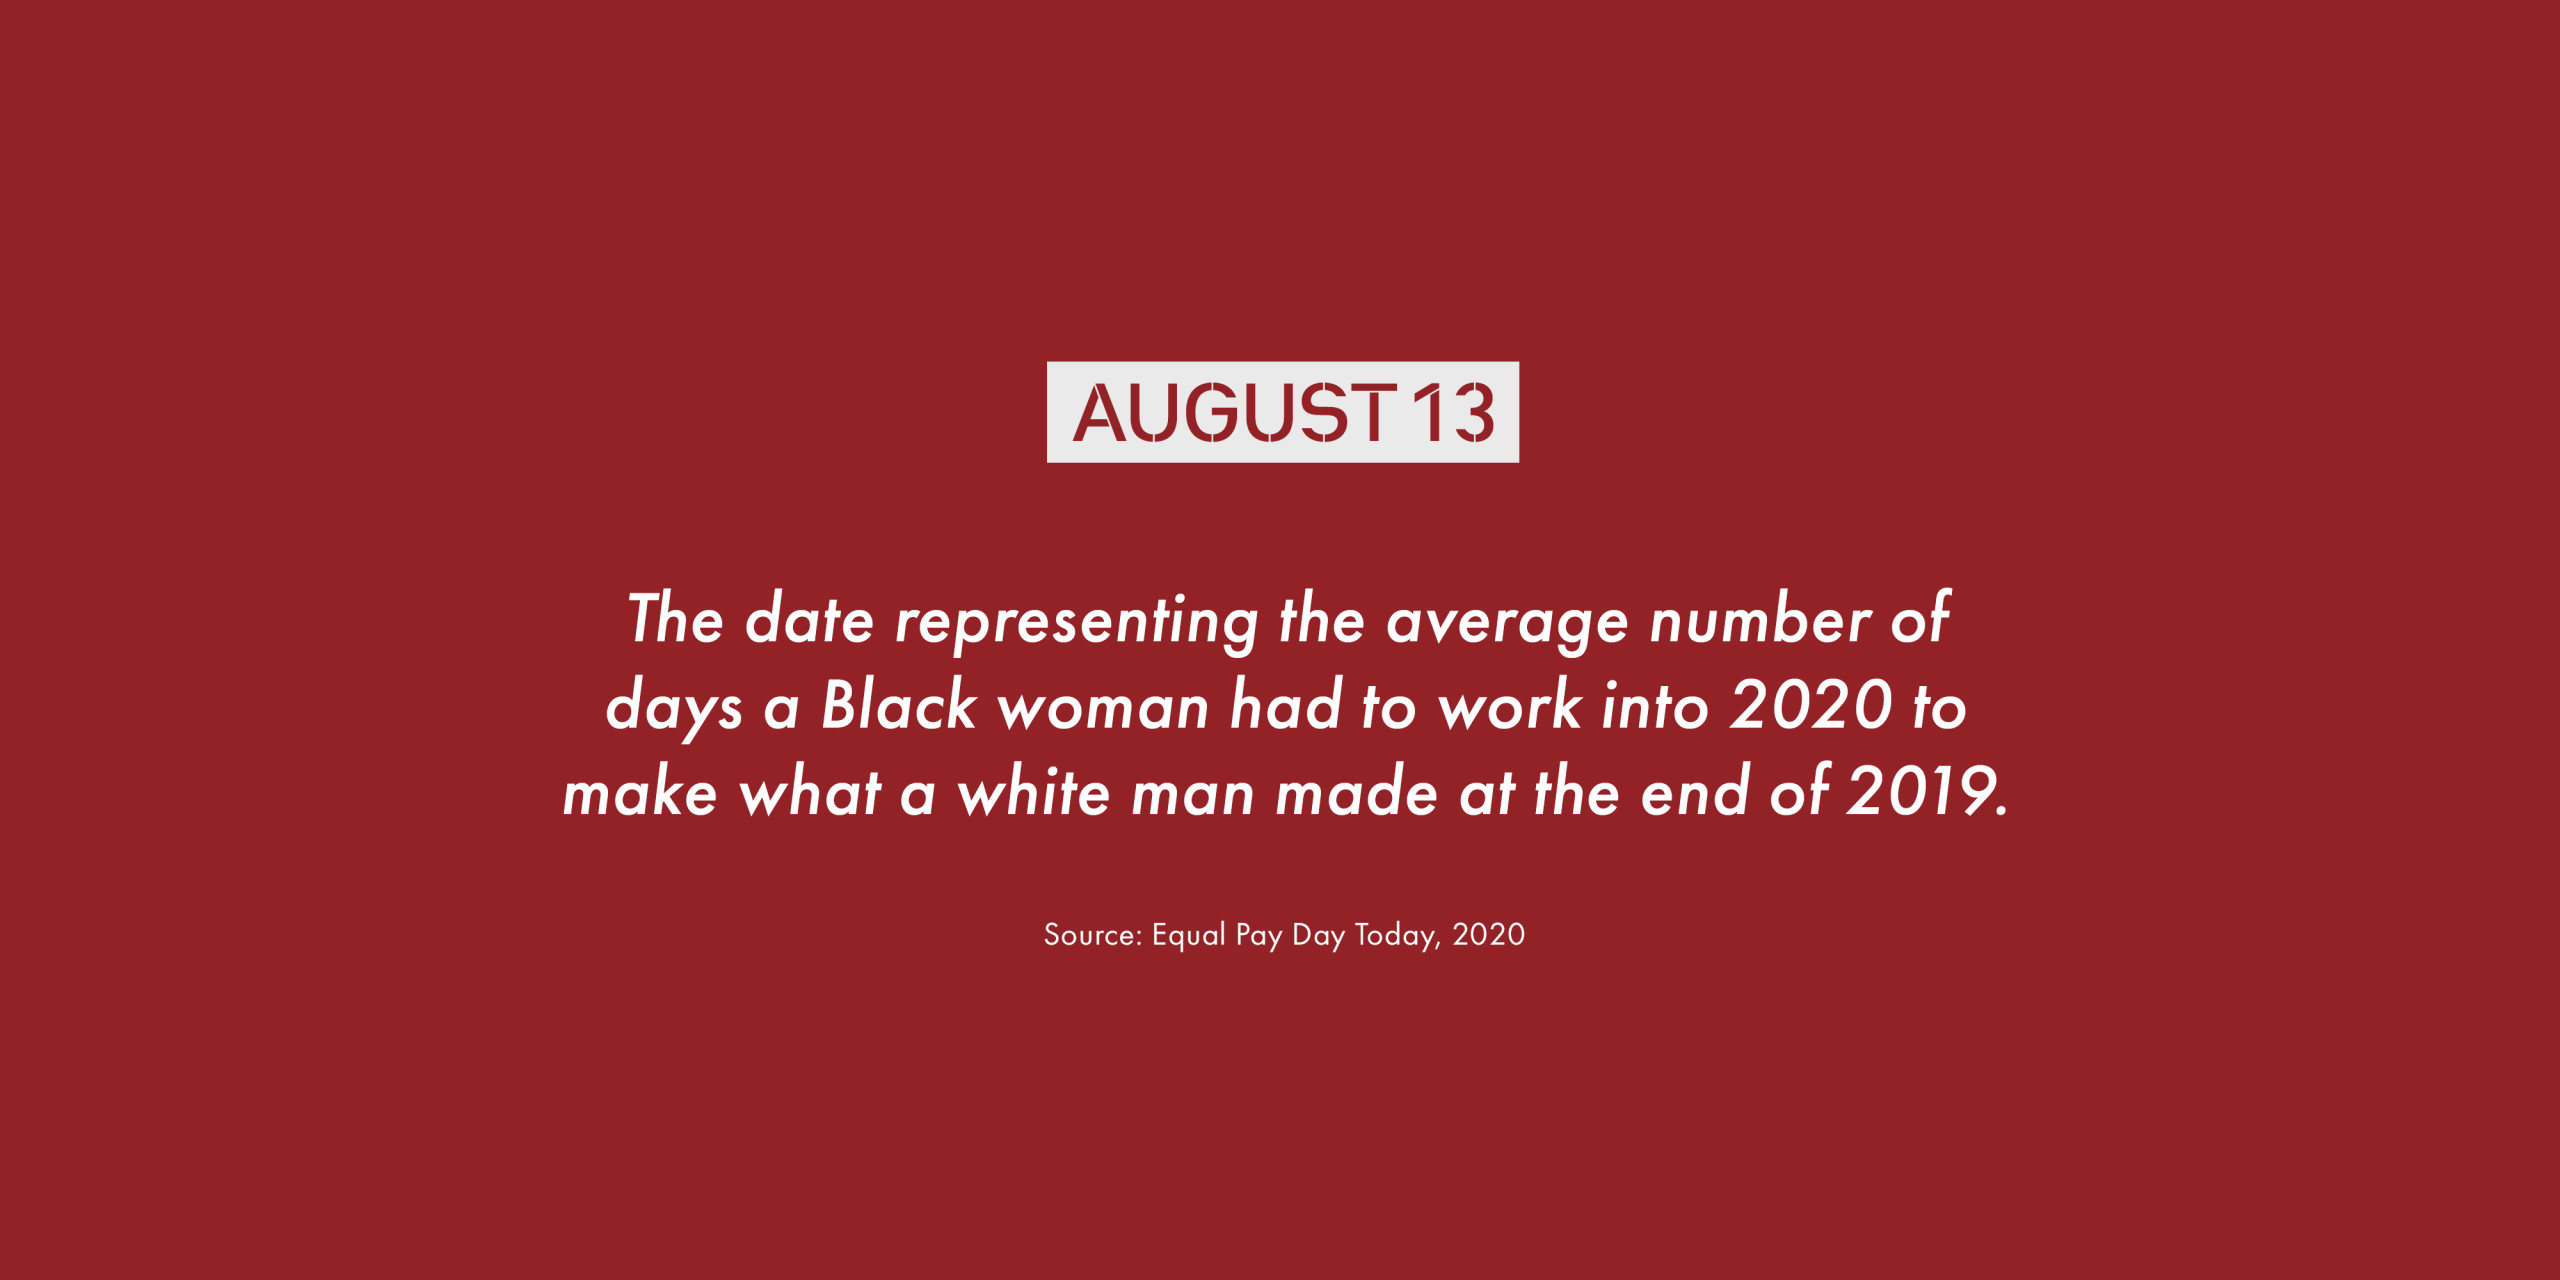 August 13. The date representing the average number of days a Black woman had to work into 2020 to make what a white man made at the end of 2019.